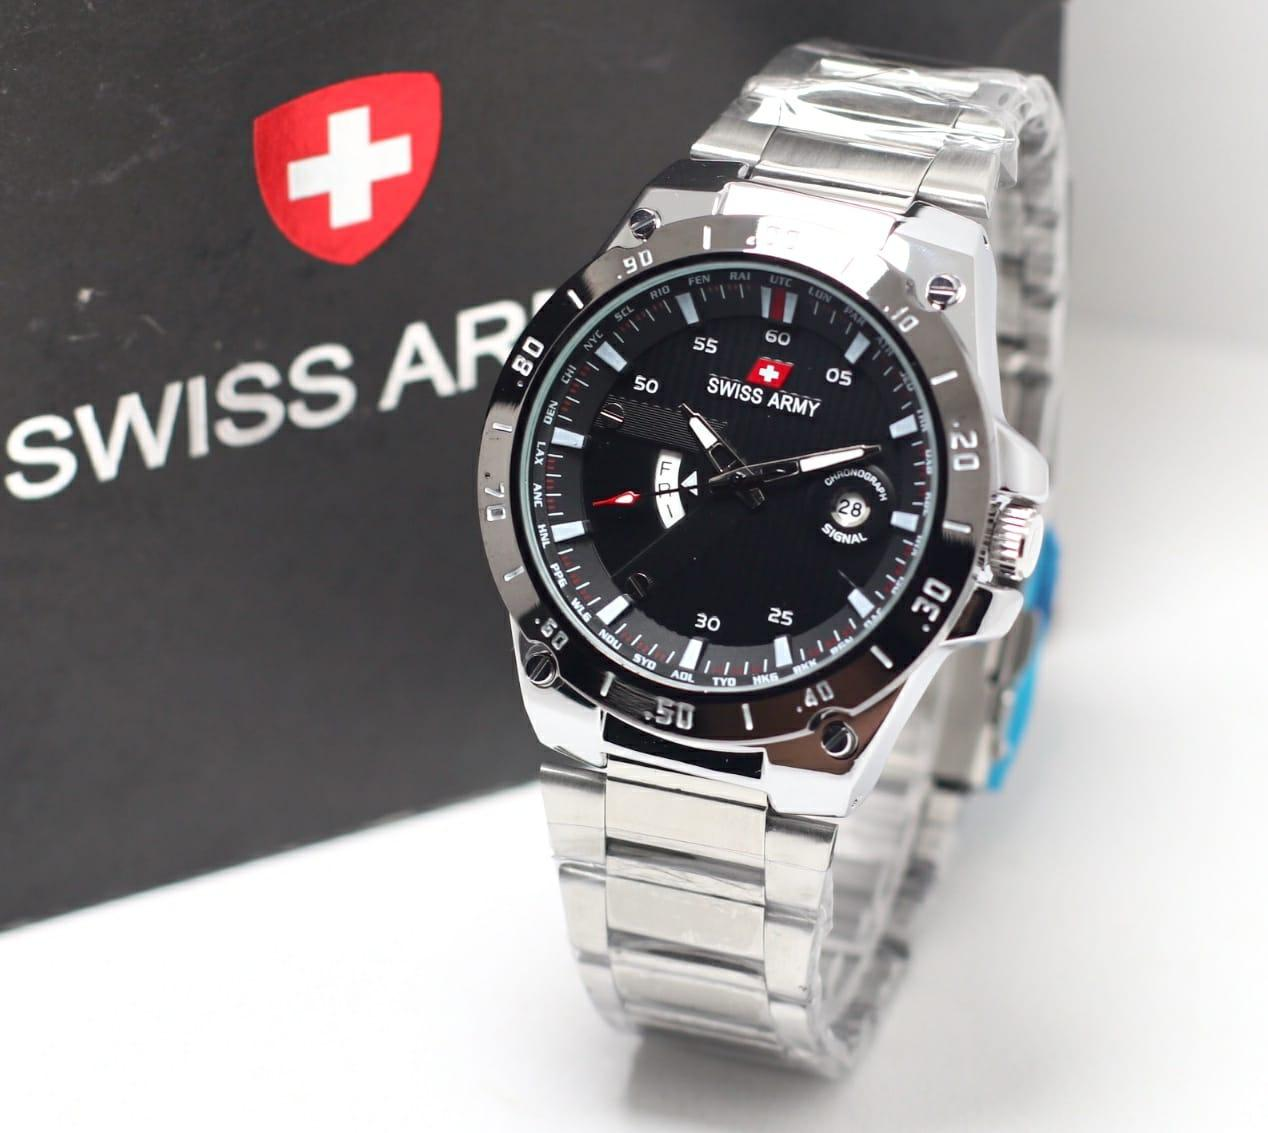 Swiss Army - Jam Tangan Pria - Silver - Stainless Steel Band -JR SA 5028